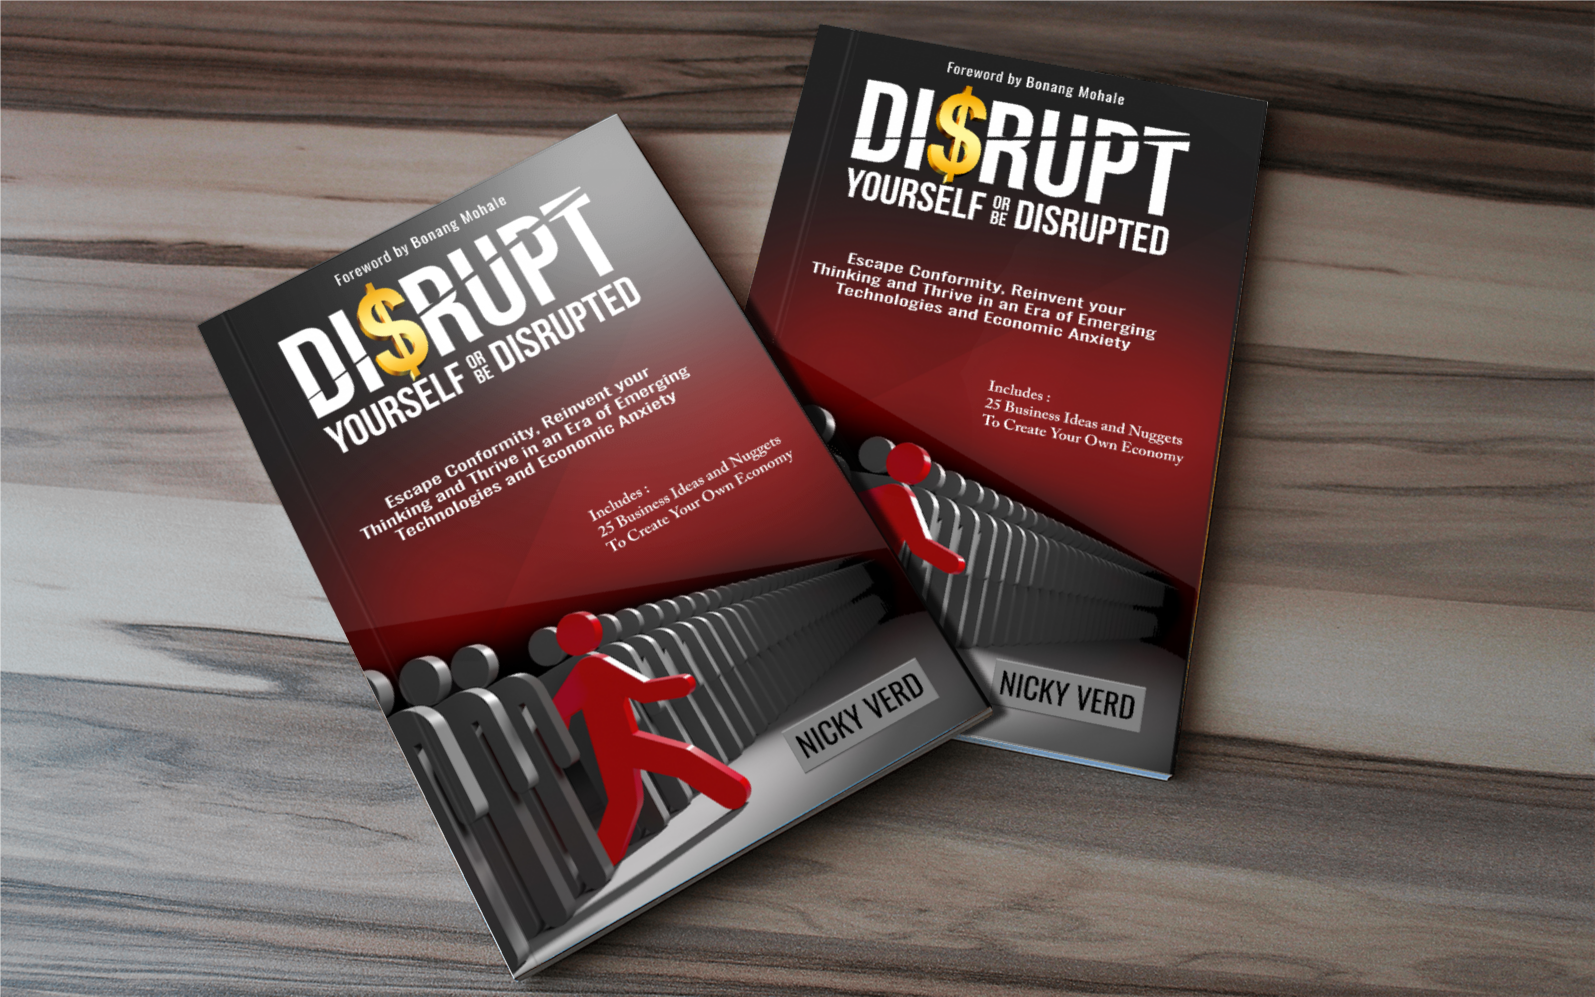 Disrupt Yourself or Be Disrupted